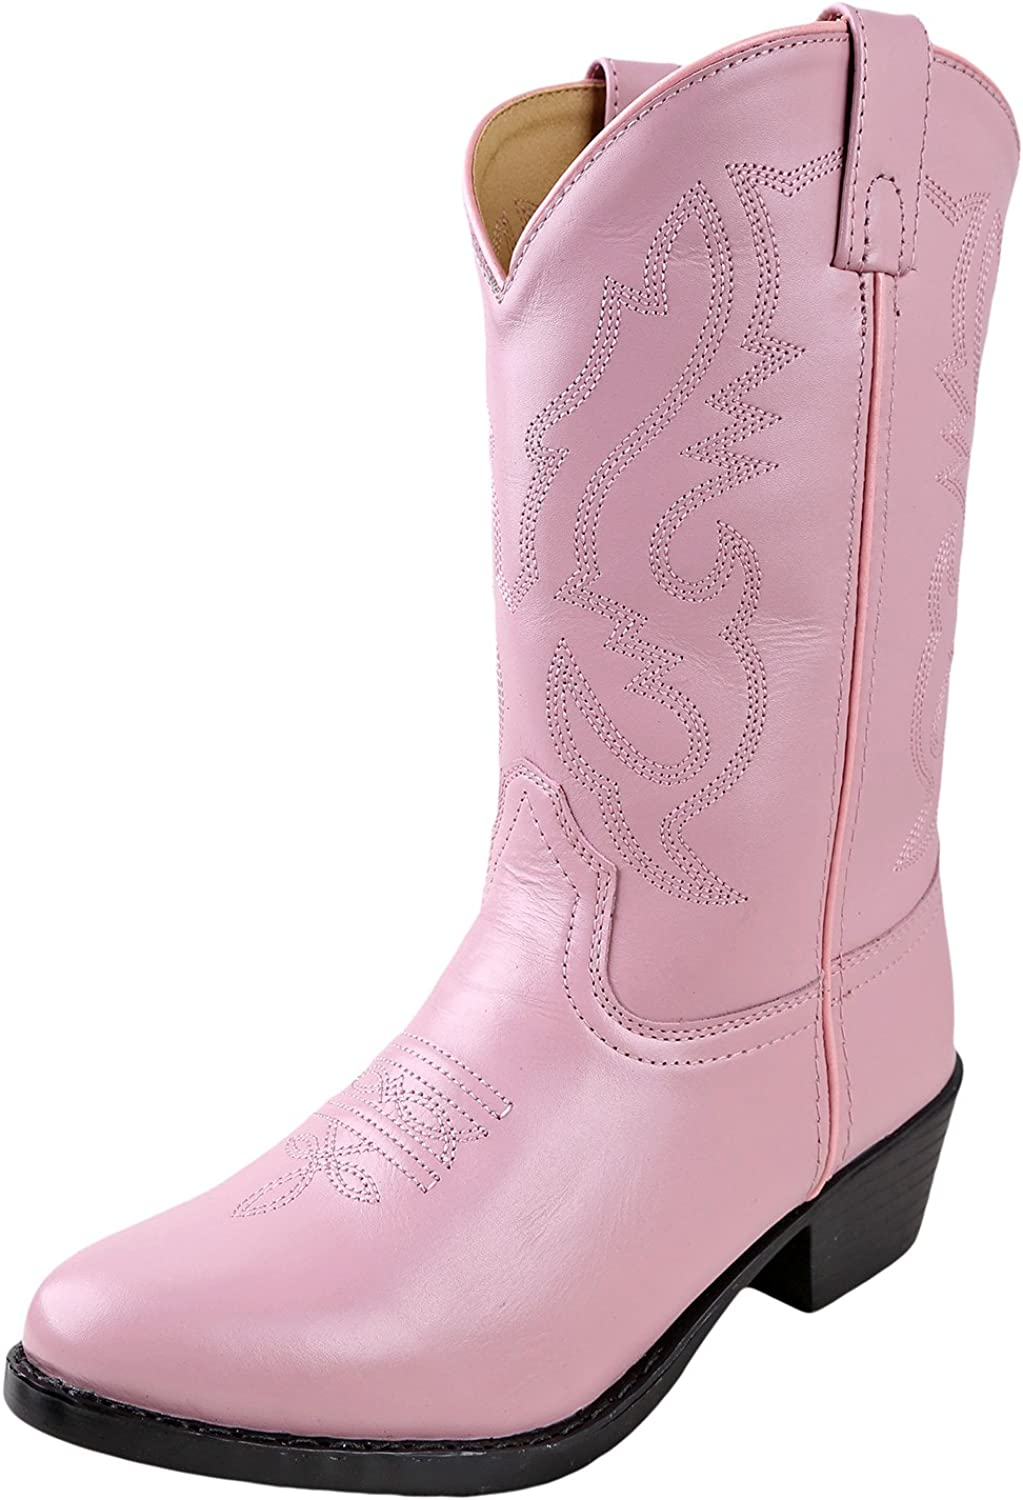 Smoky Mountain Youth Girls Jolene Pink Leather Cowboy Boots